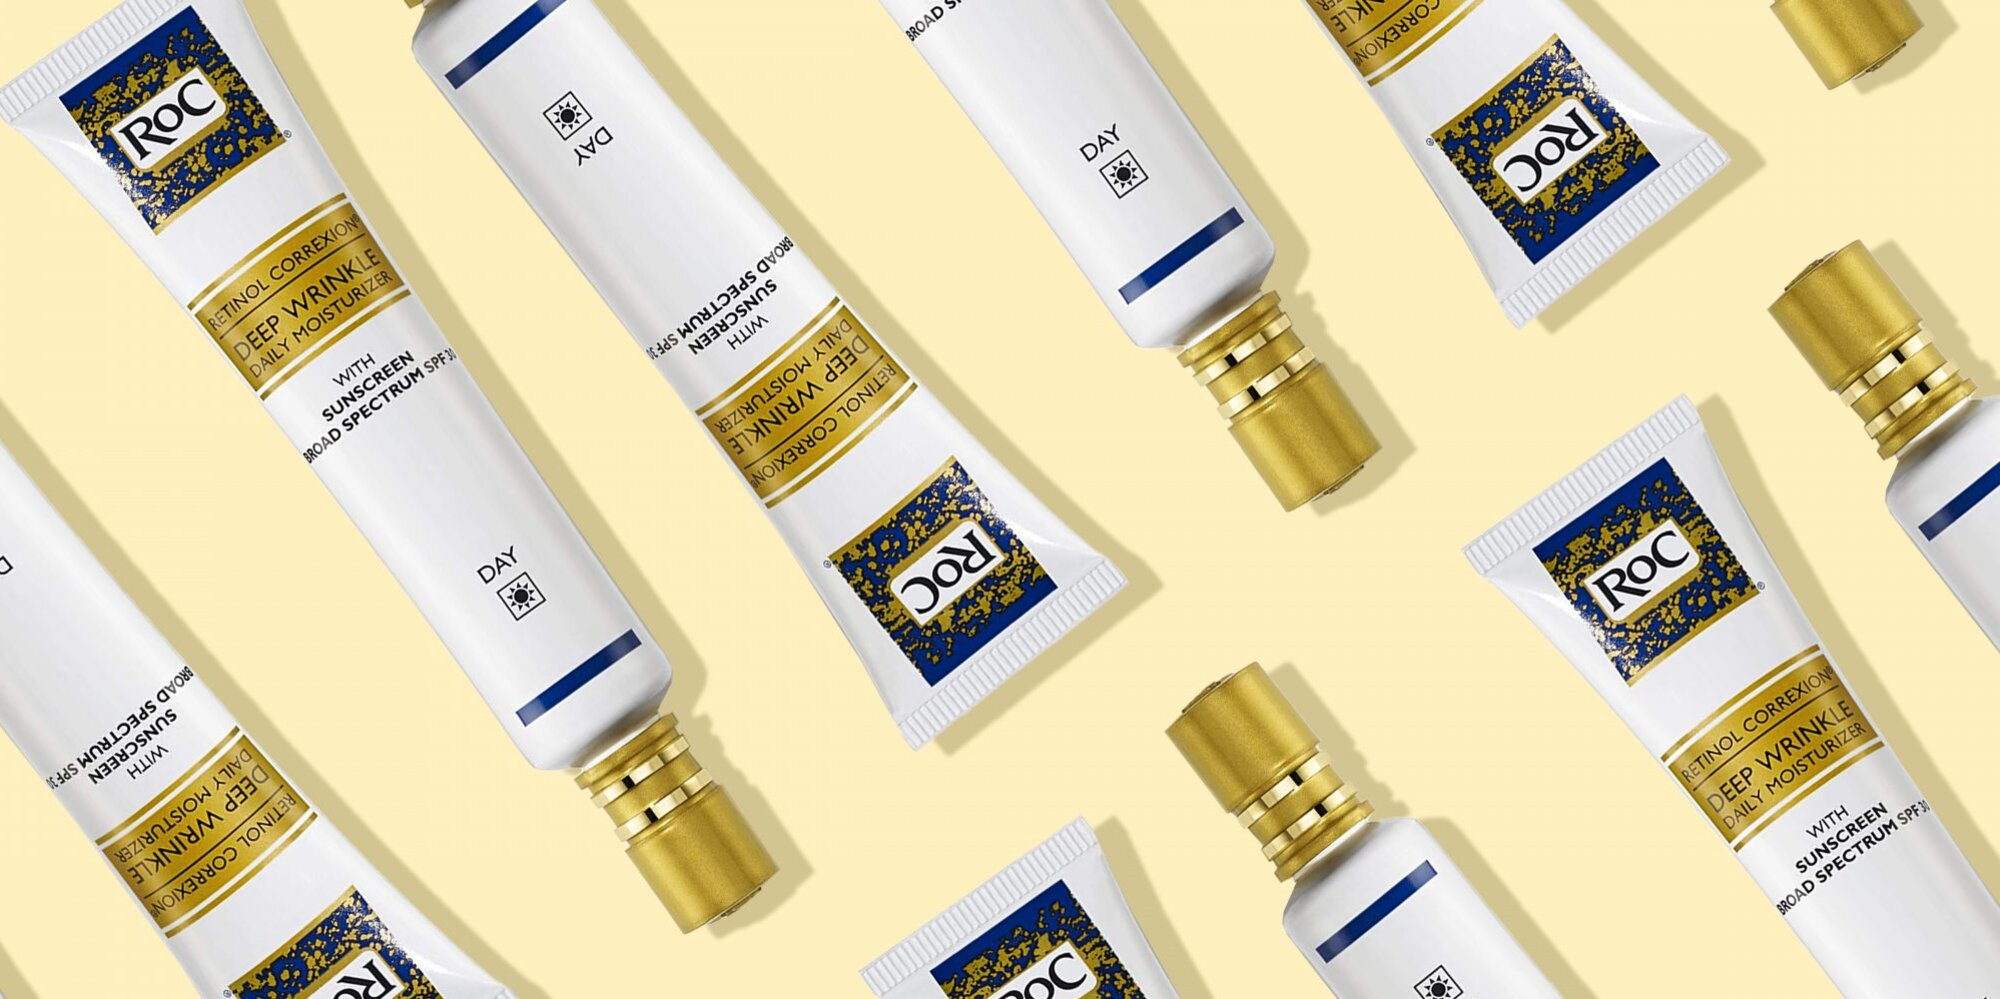 This Retinol Moisturizer Makes Users Look '10 Years Younger'-and It's on Sale for $15 Post-Prime Day